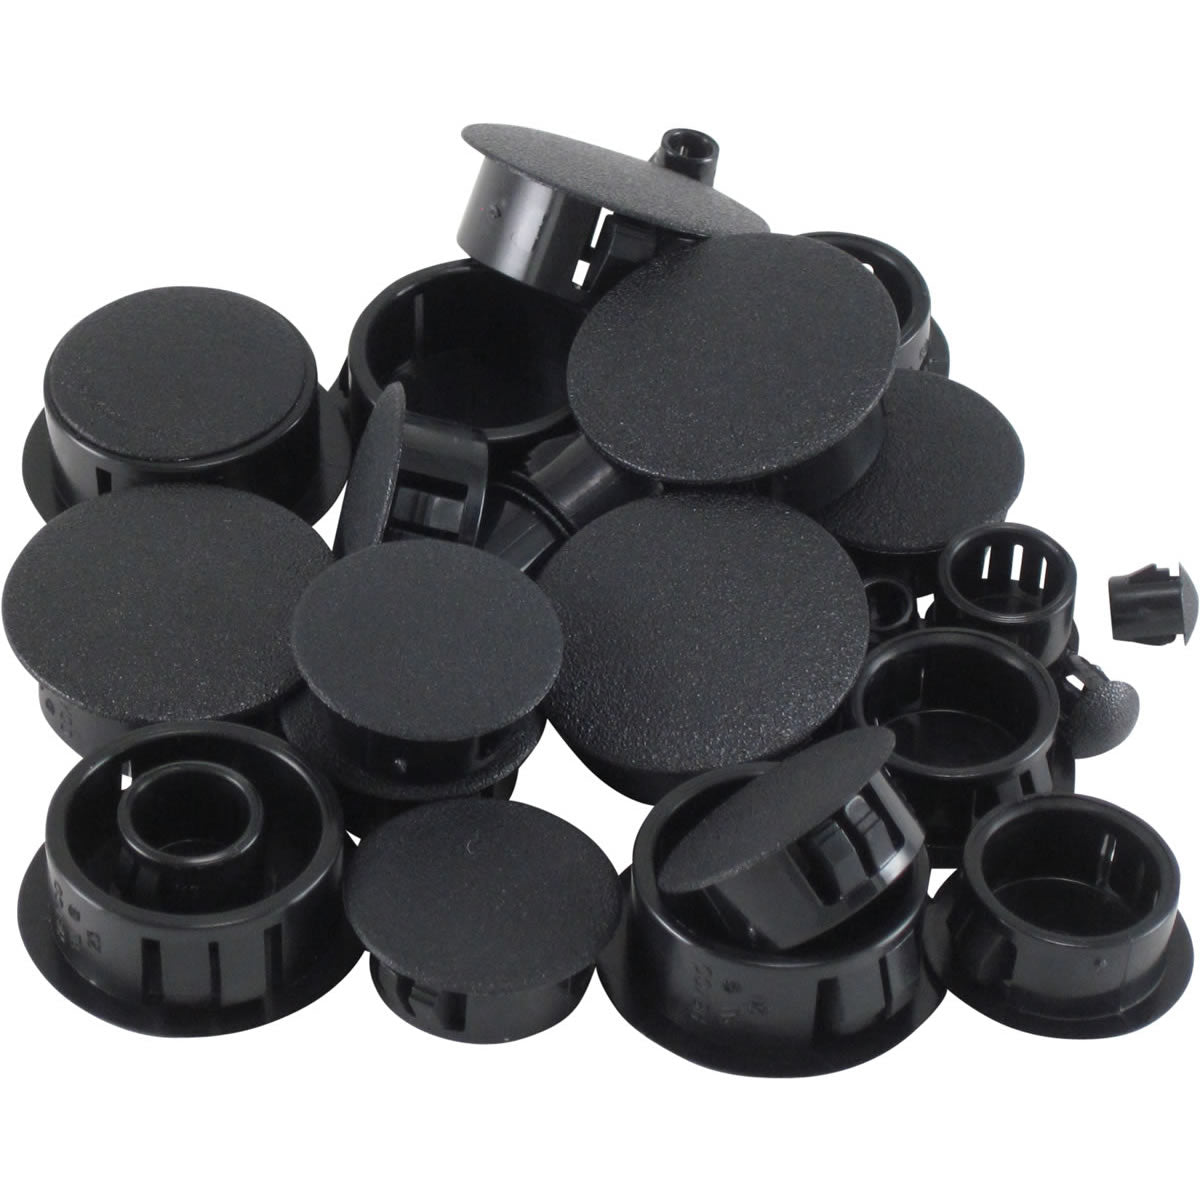 30 Piece Locking Hole Plugs